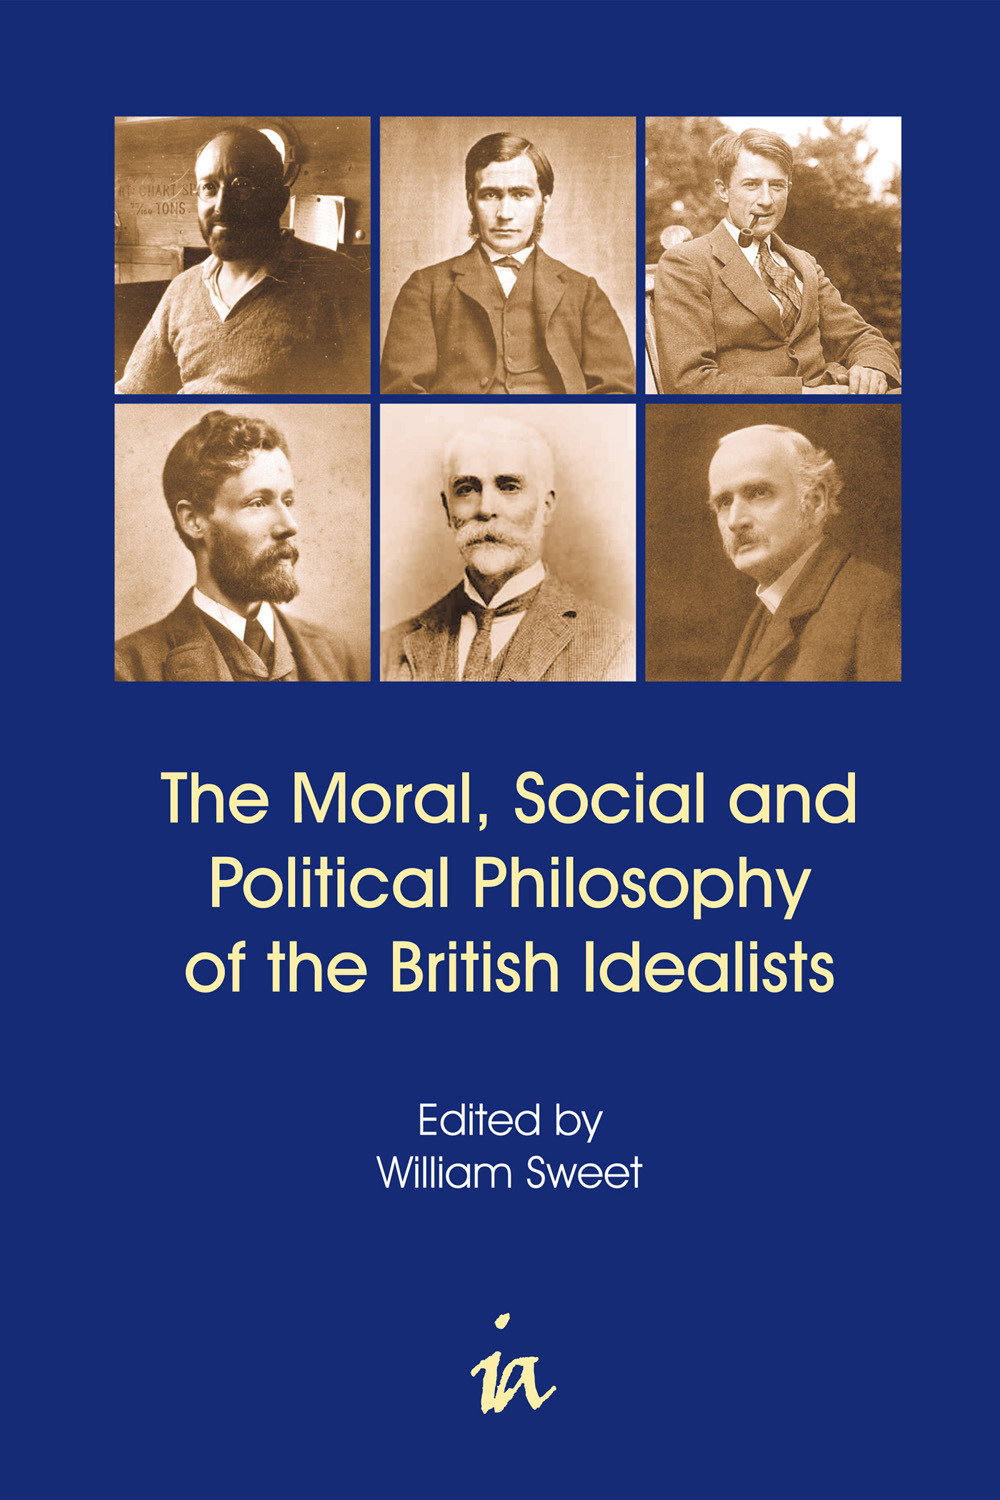 the views on moral and social philosophy View essay - moral, social and political philosophy matrix essay from philosophy 215 at university of phoenix running head: moral/social and political philosophy matrix moral/social and.